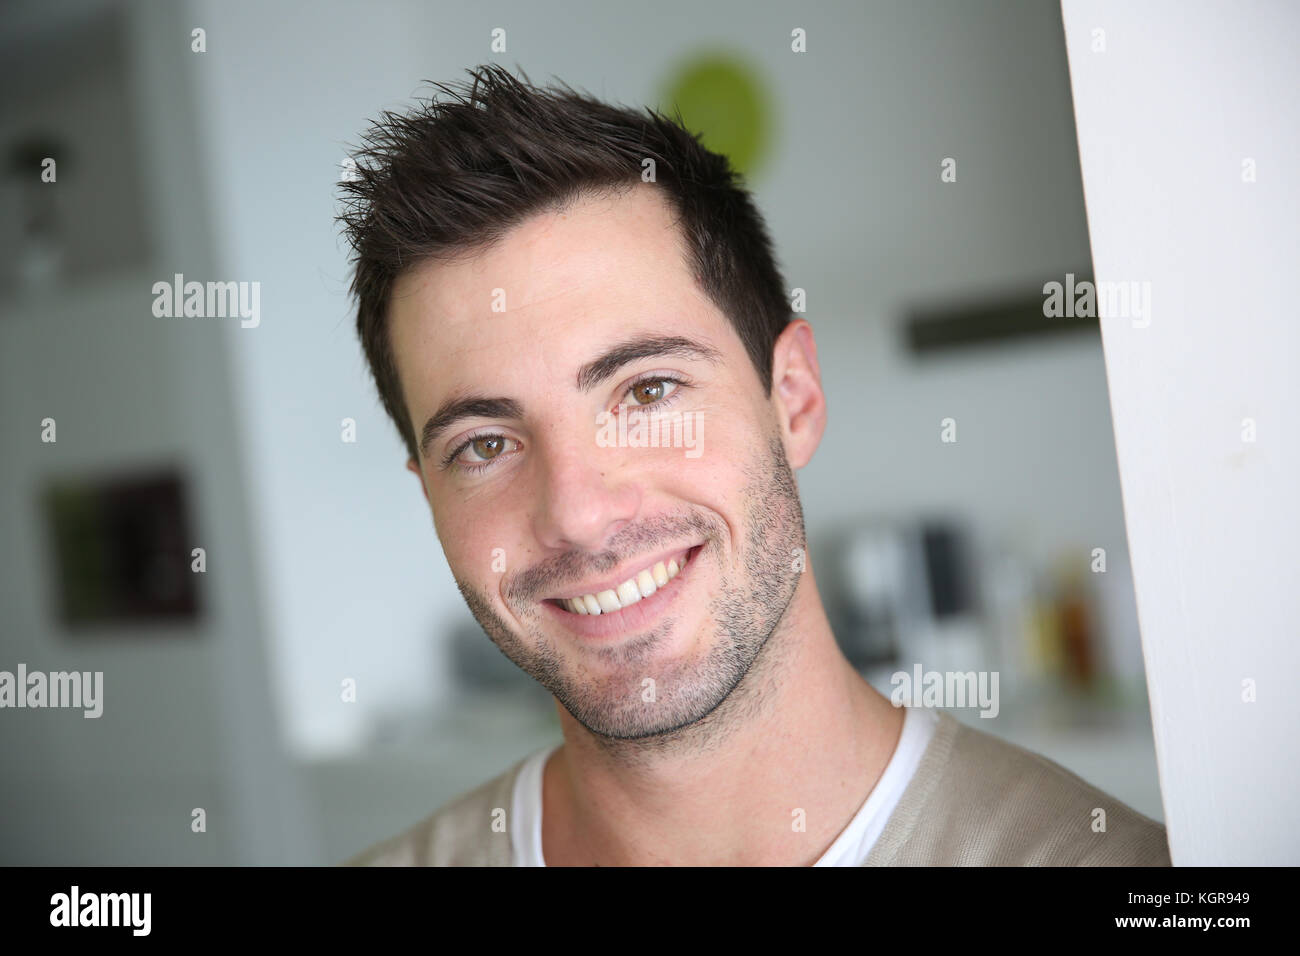 Portrait of smiling attractive man - Stock Image